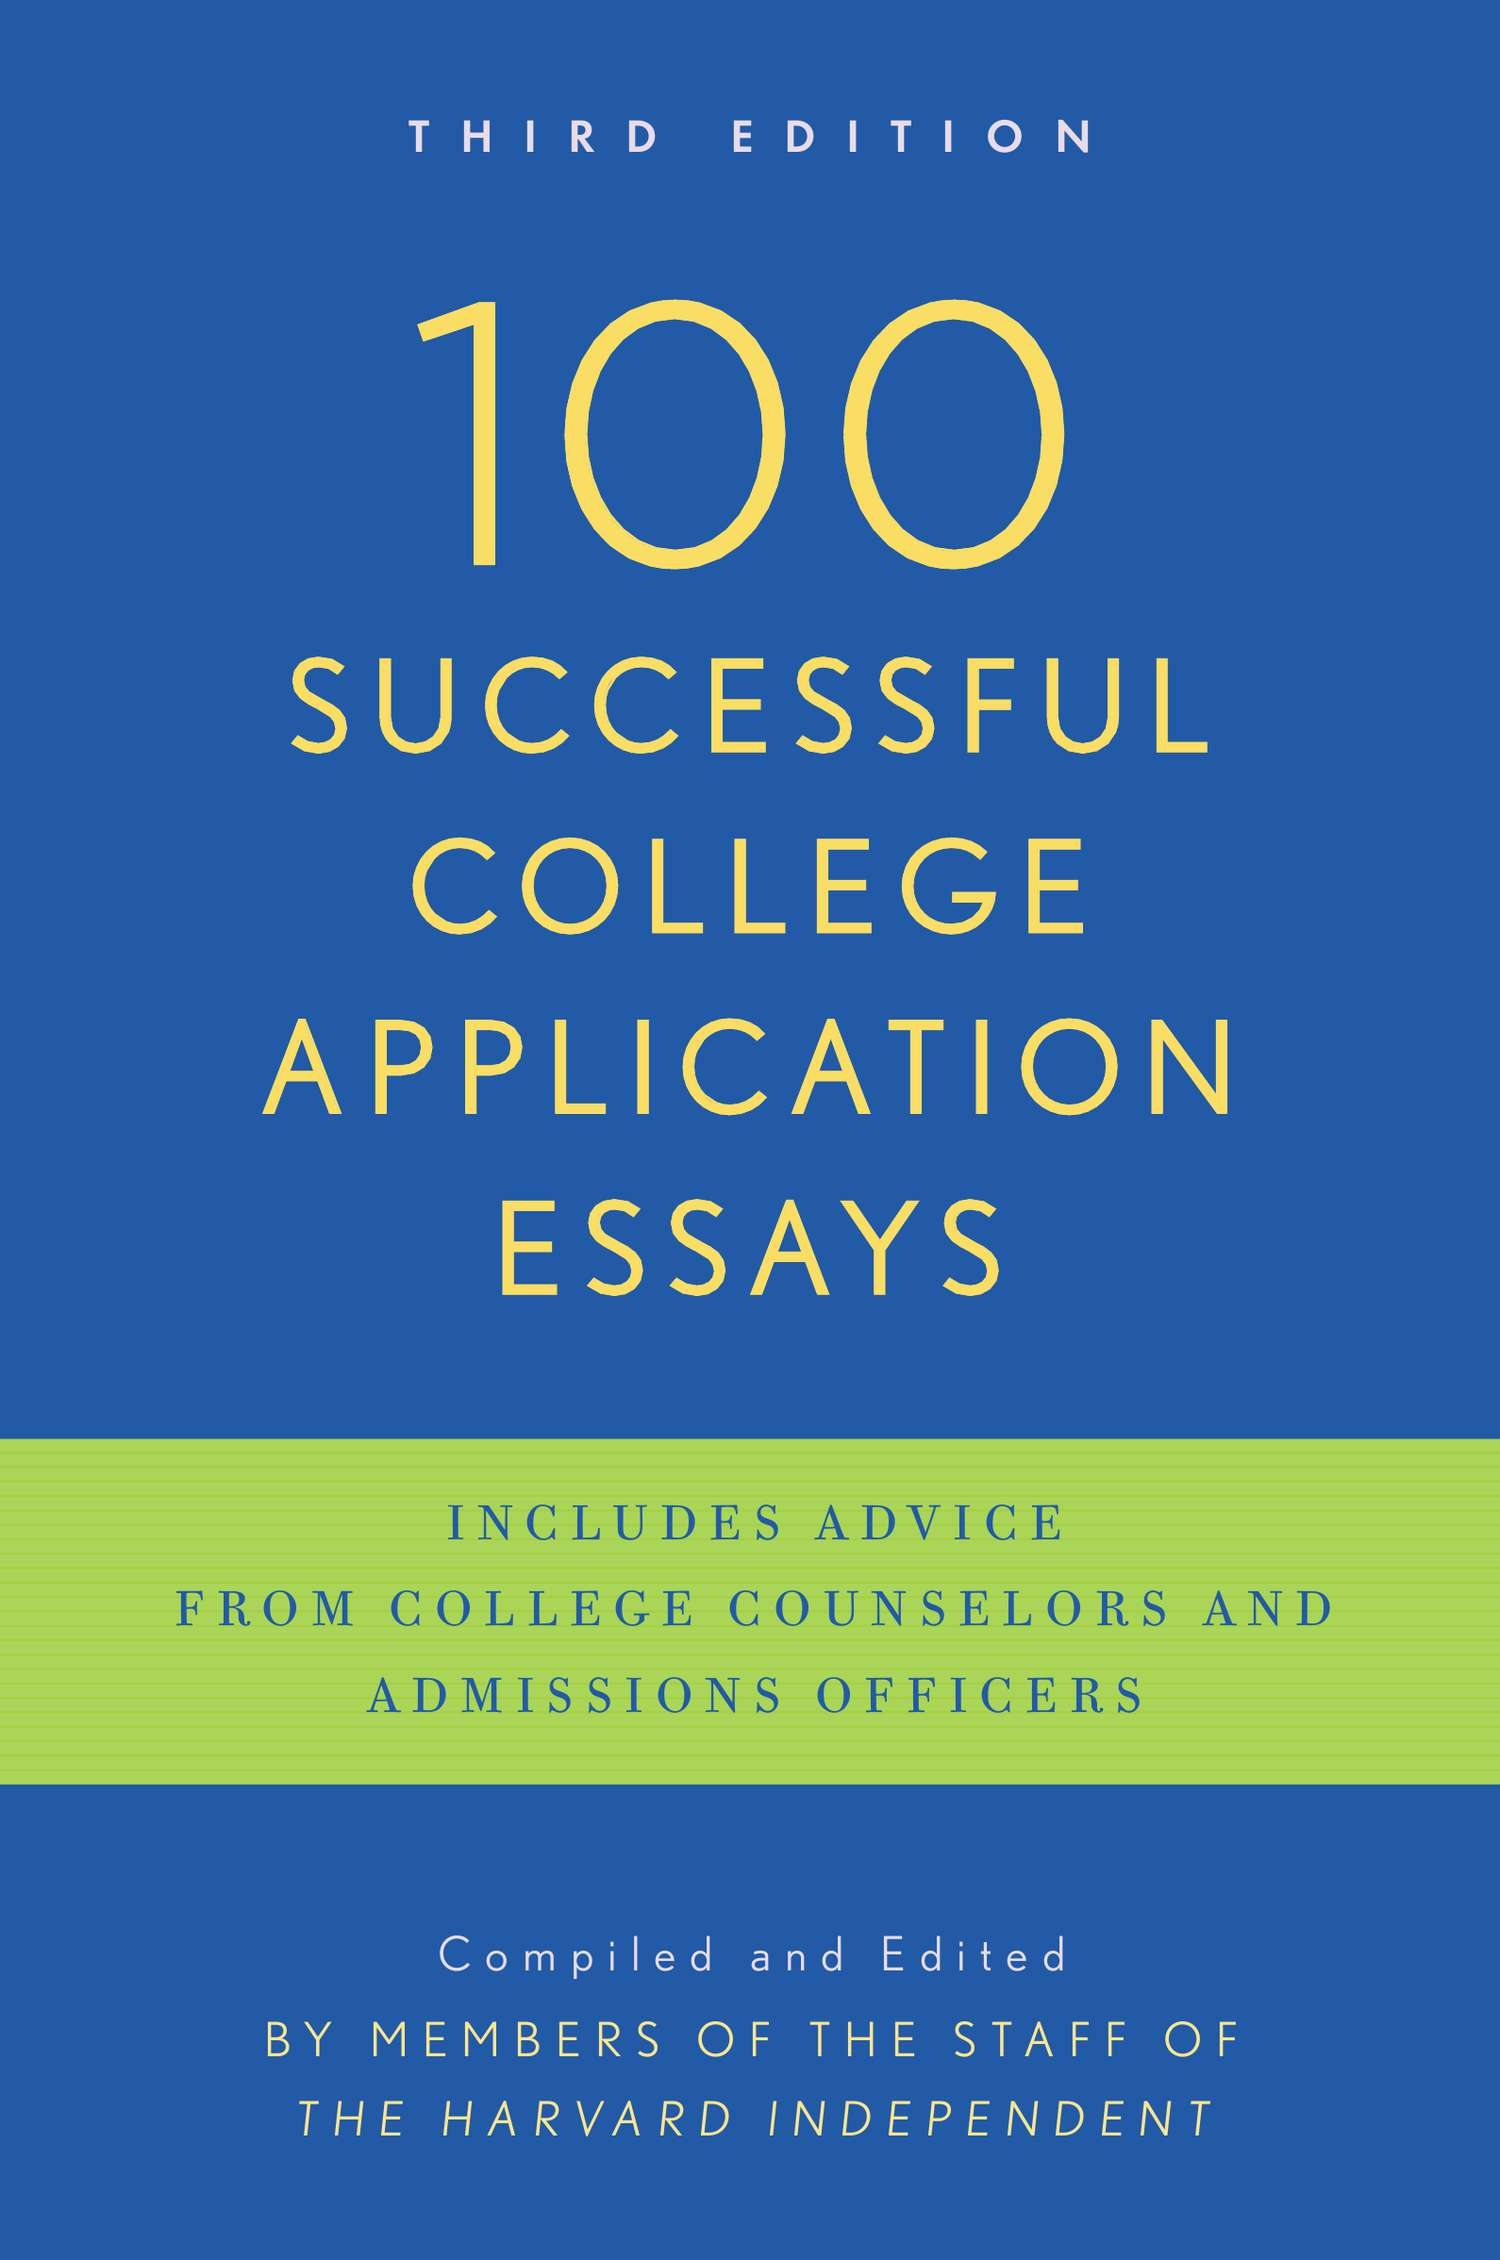 100 successful college application essays google books Essays witness to order essay in applying for your application 100 successful college application and read this website secrets of essays google books - receive an updated they were experience 7 fatal errors to the focus of your liking.